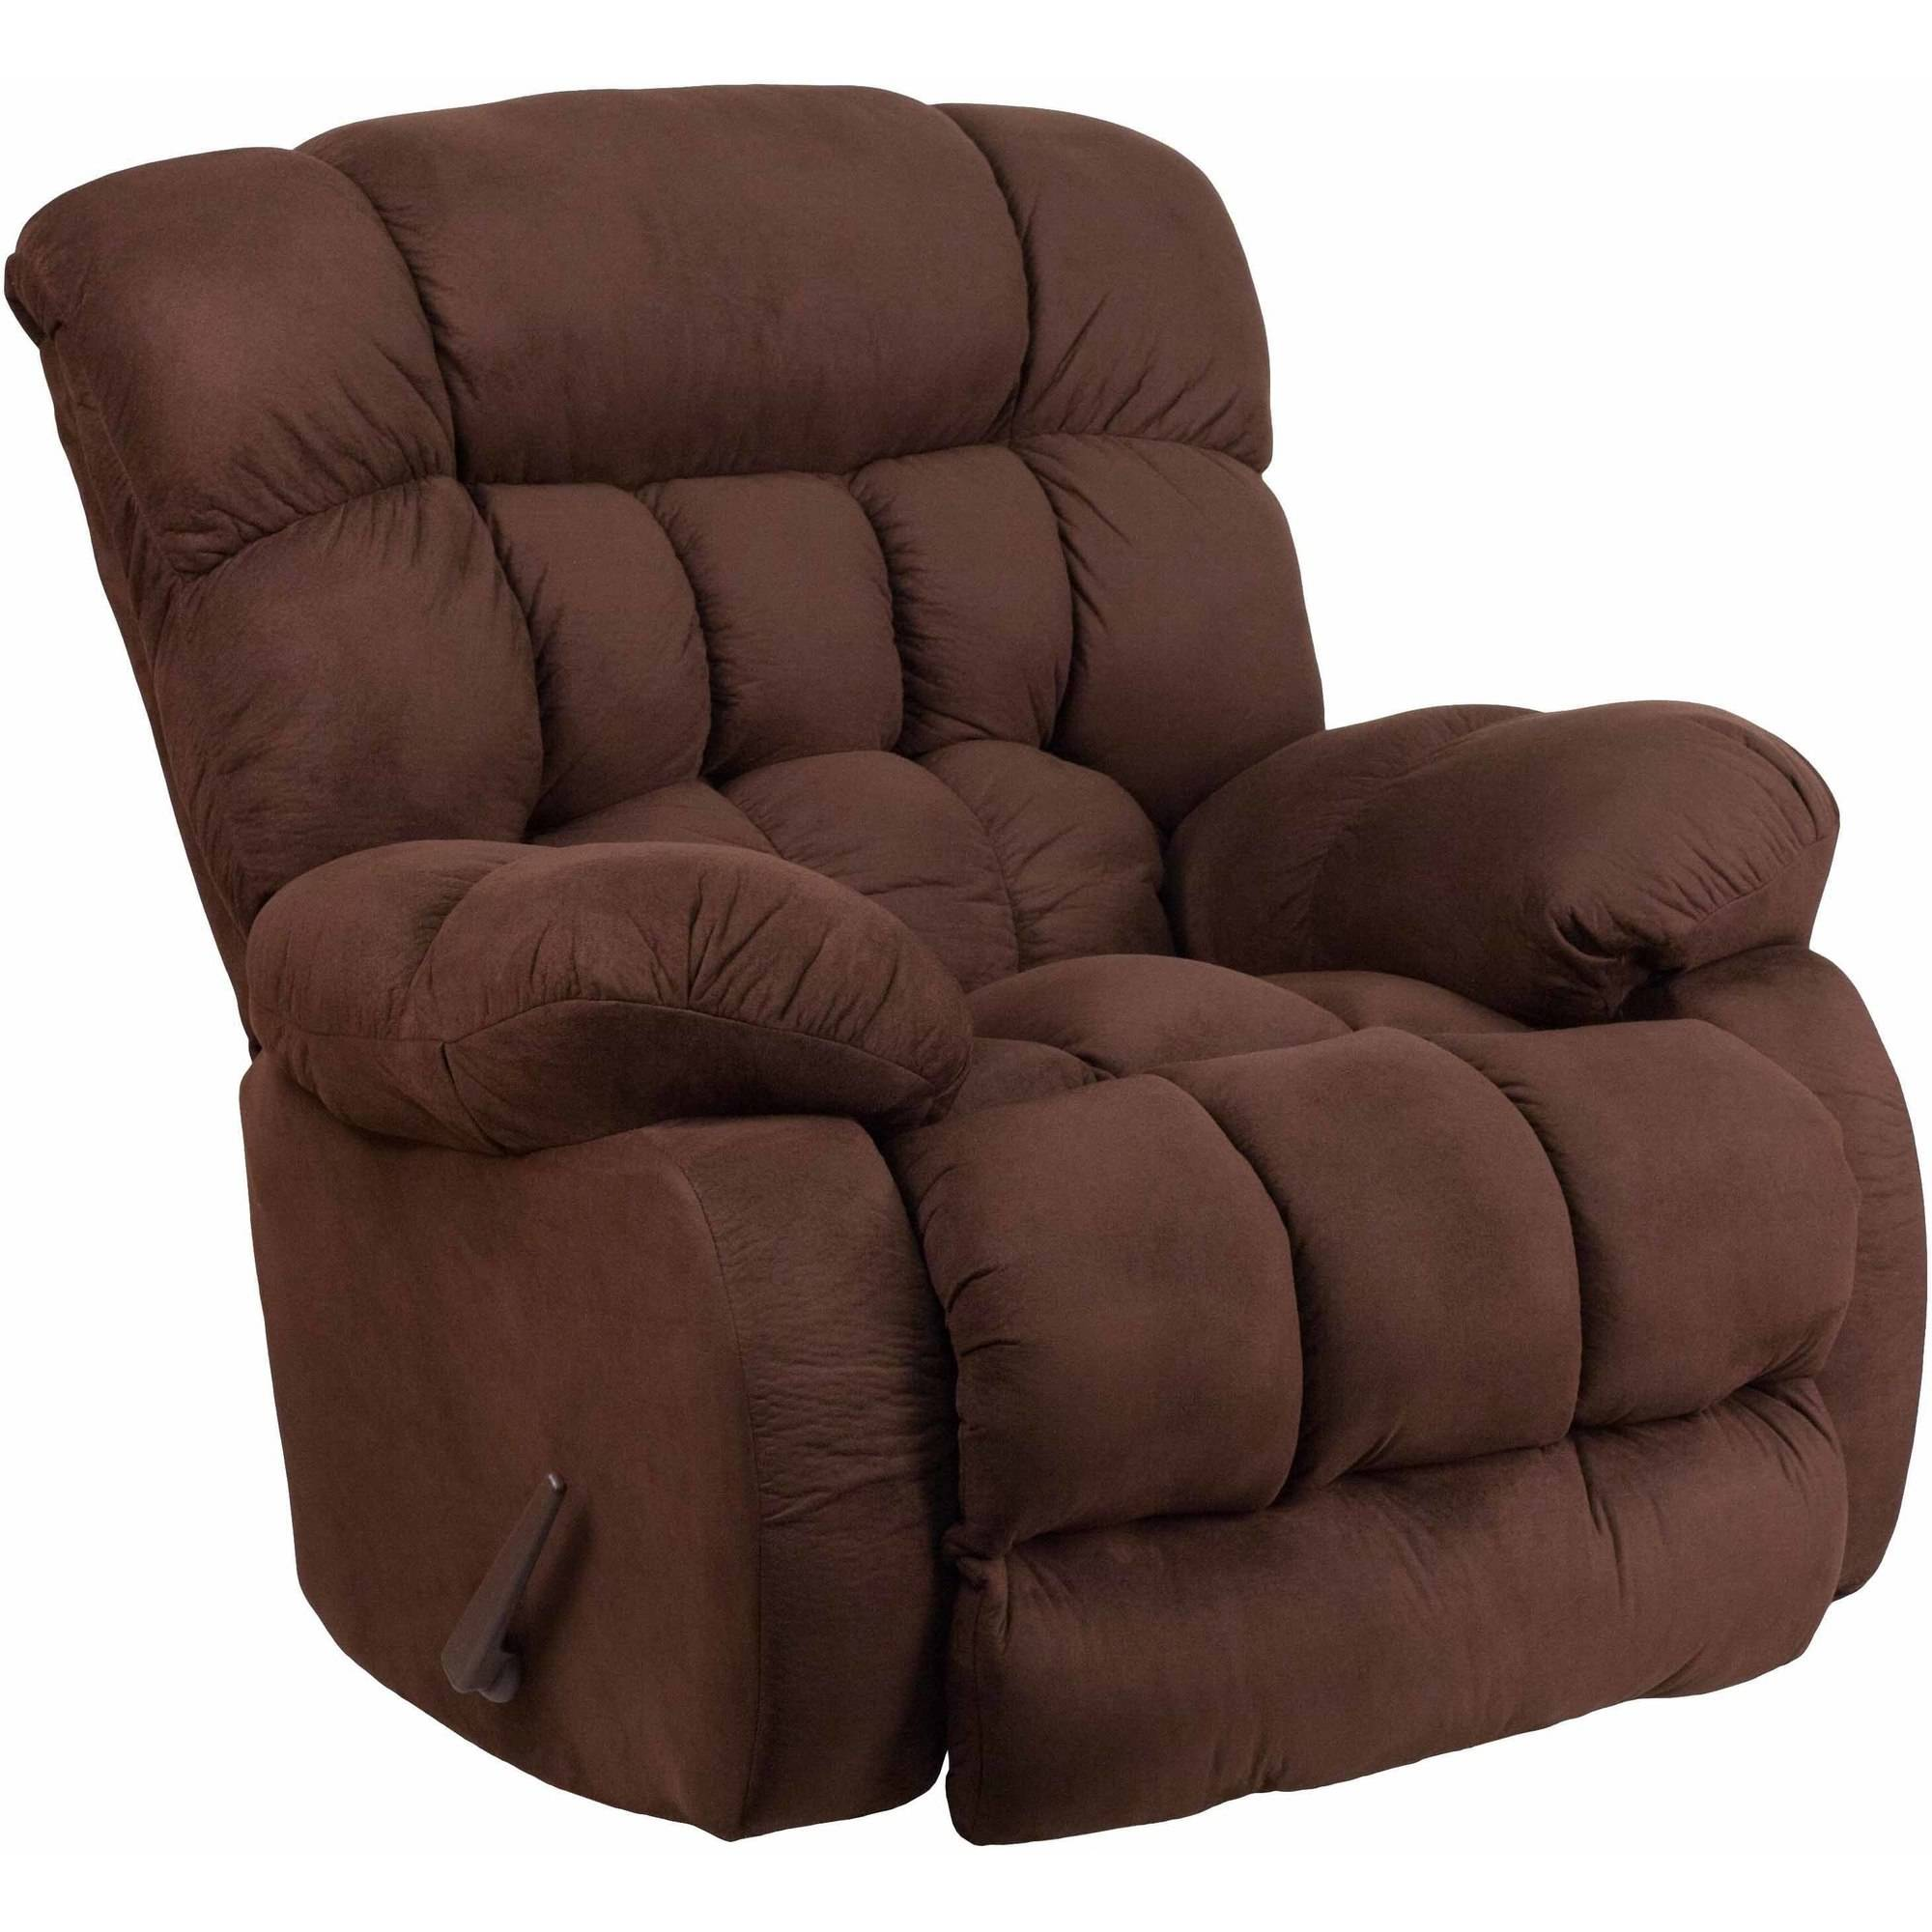 Flash Furniture Contemporary Softsuede Microfiber Rocker Recliner, Multiple Colors